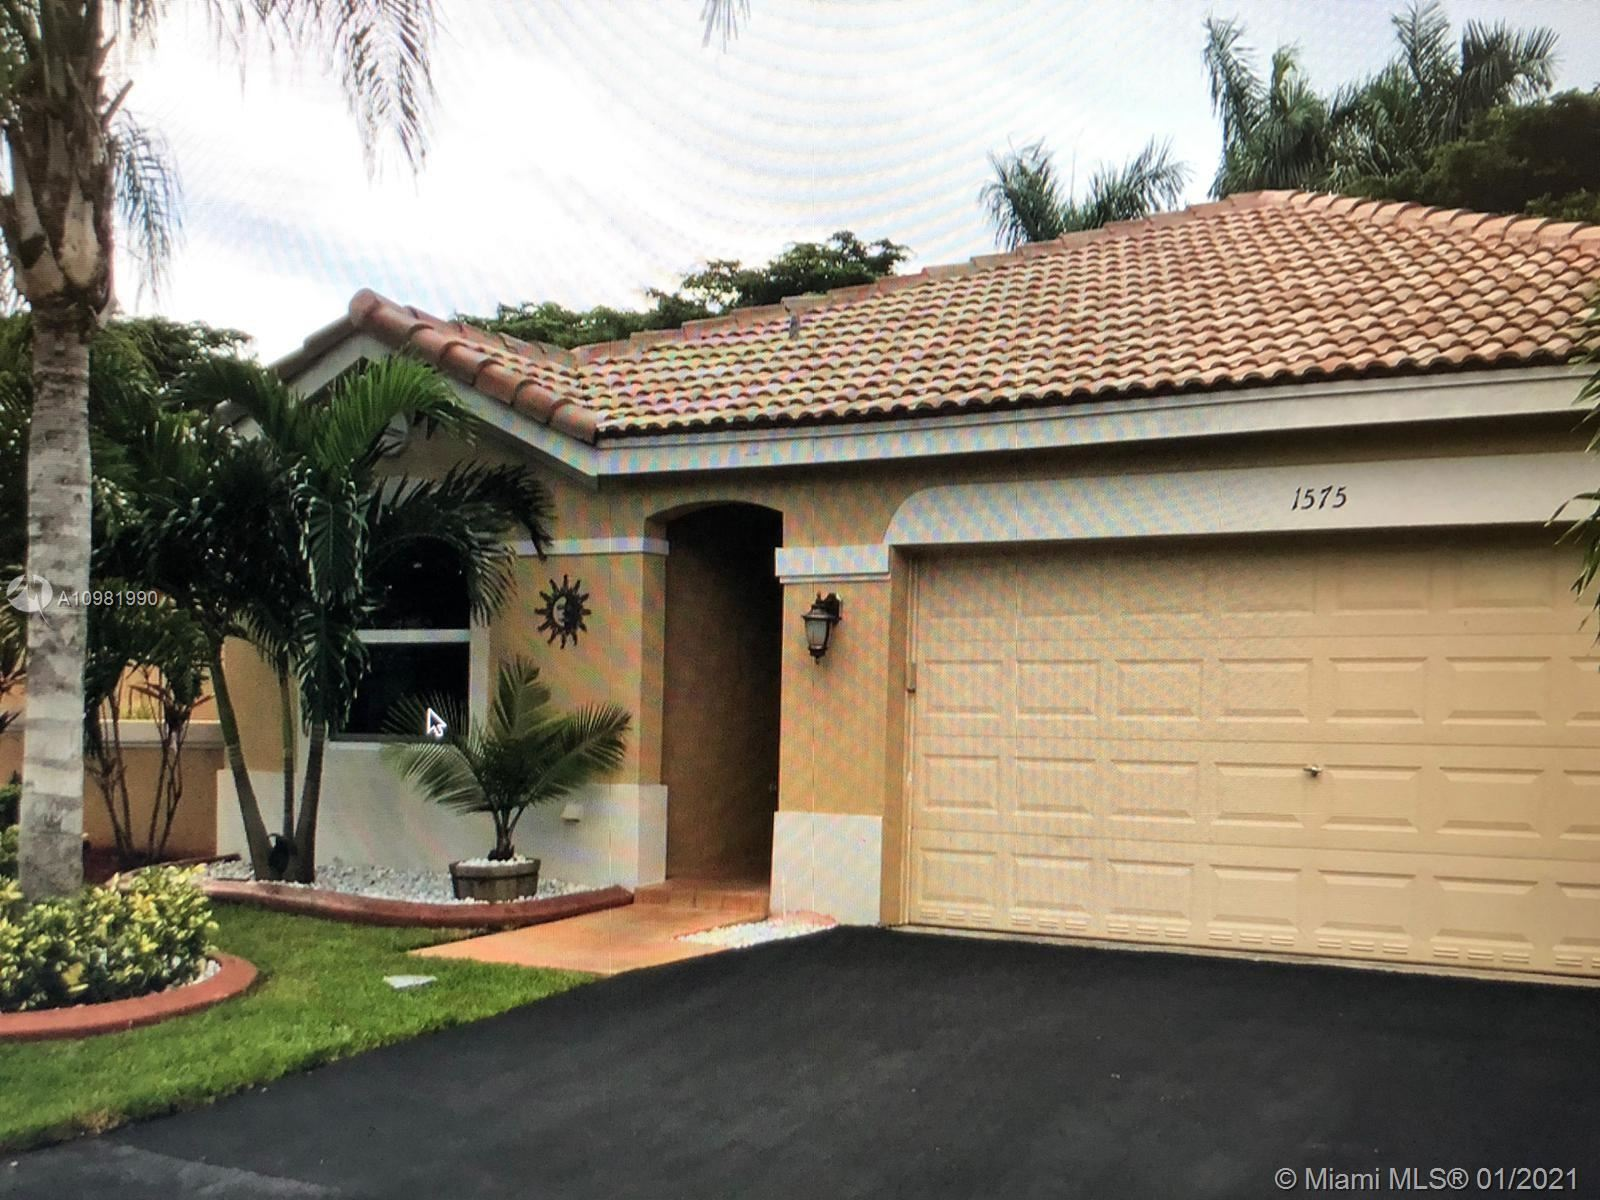 1575 Zenith Way, Weston, FL 33327 - #: A10981990